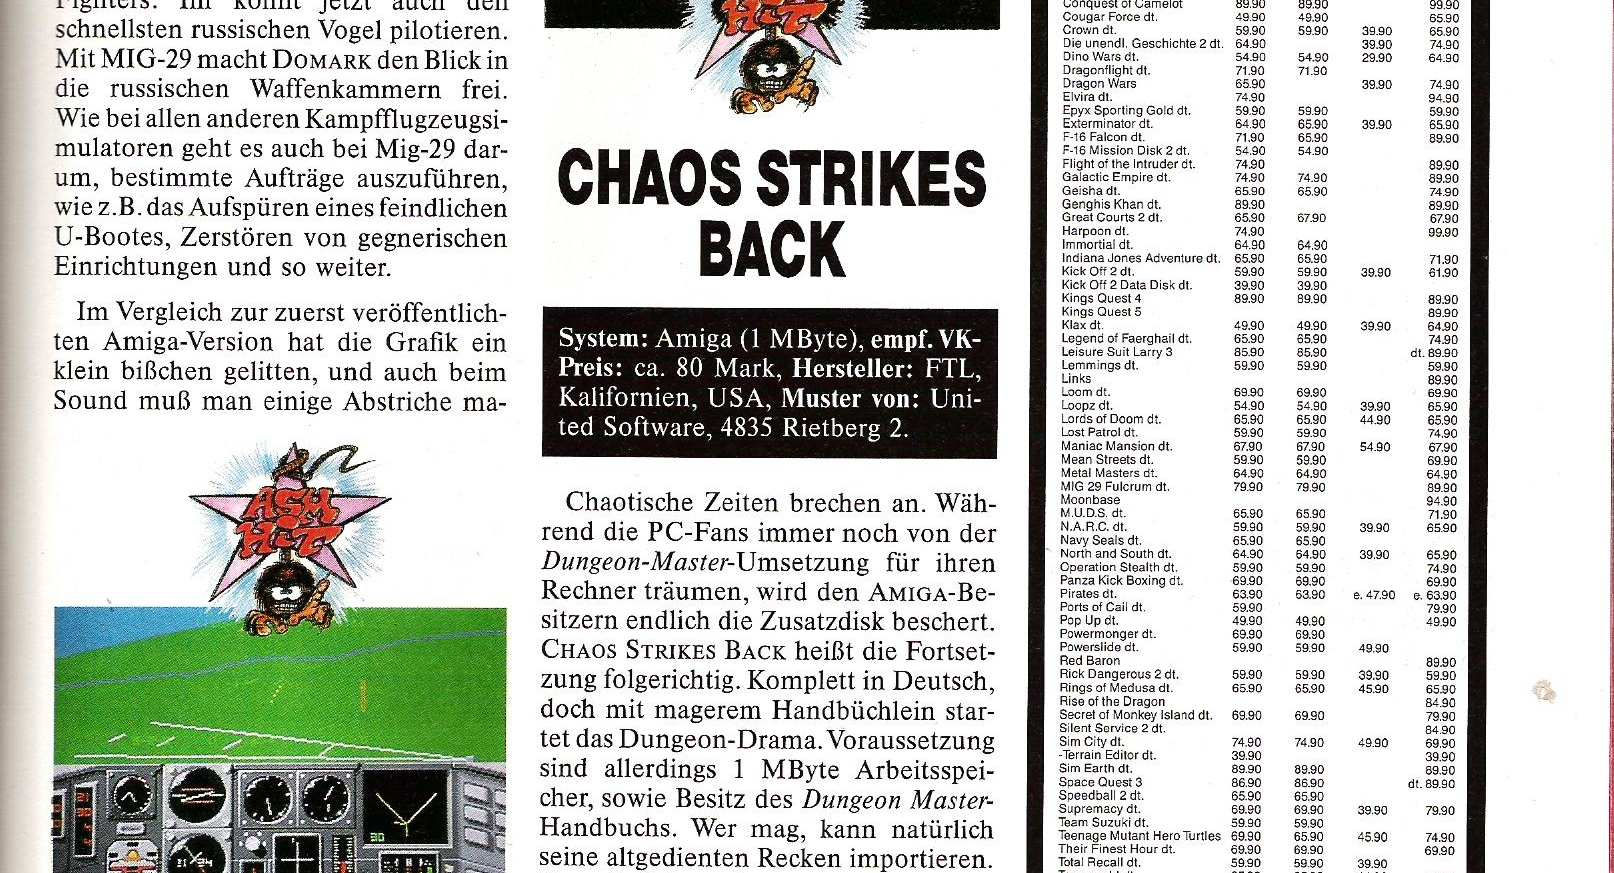 Chaos Strikes Back for Amiga Review published in German magazine 'ASM', April 1991, Page 109